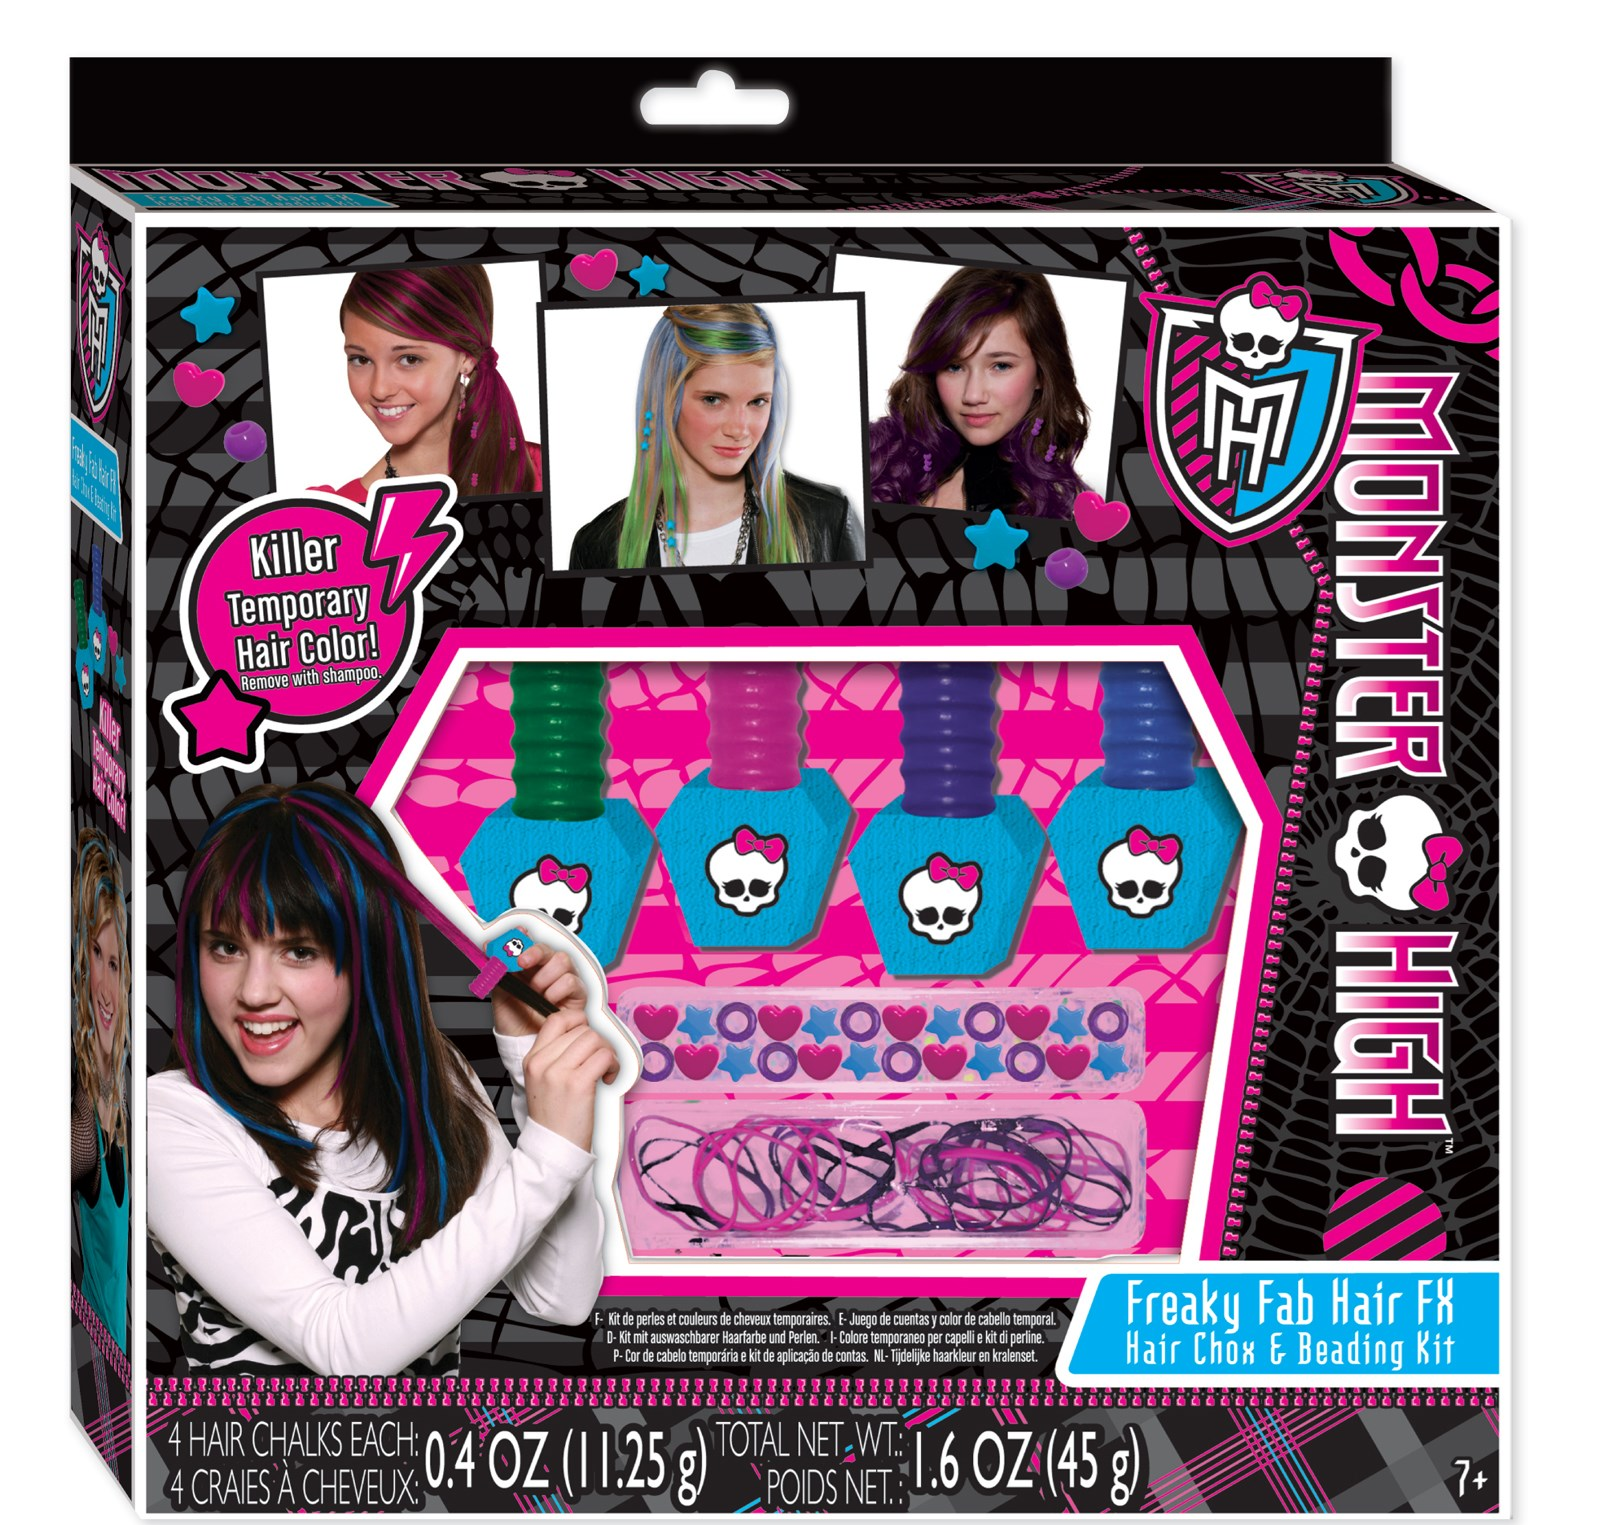 Image of Monster High Hair Chox and Beading Kit